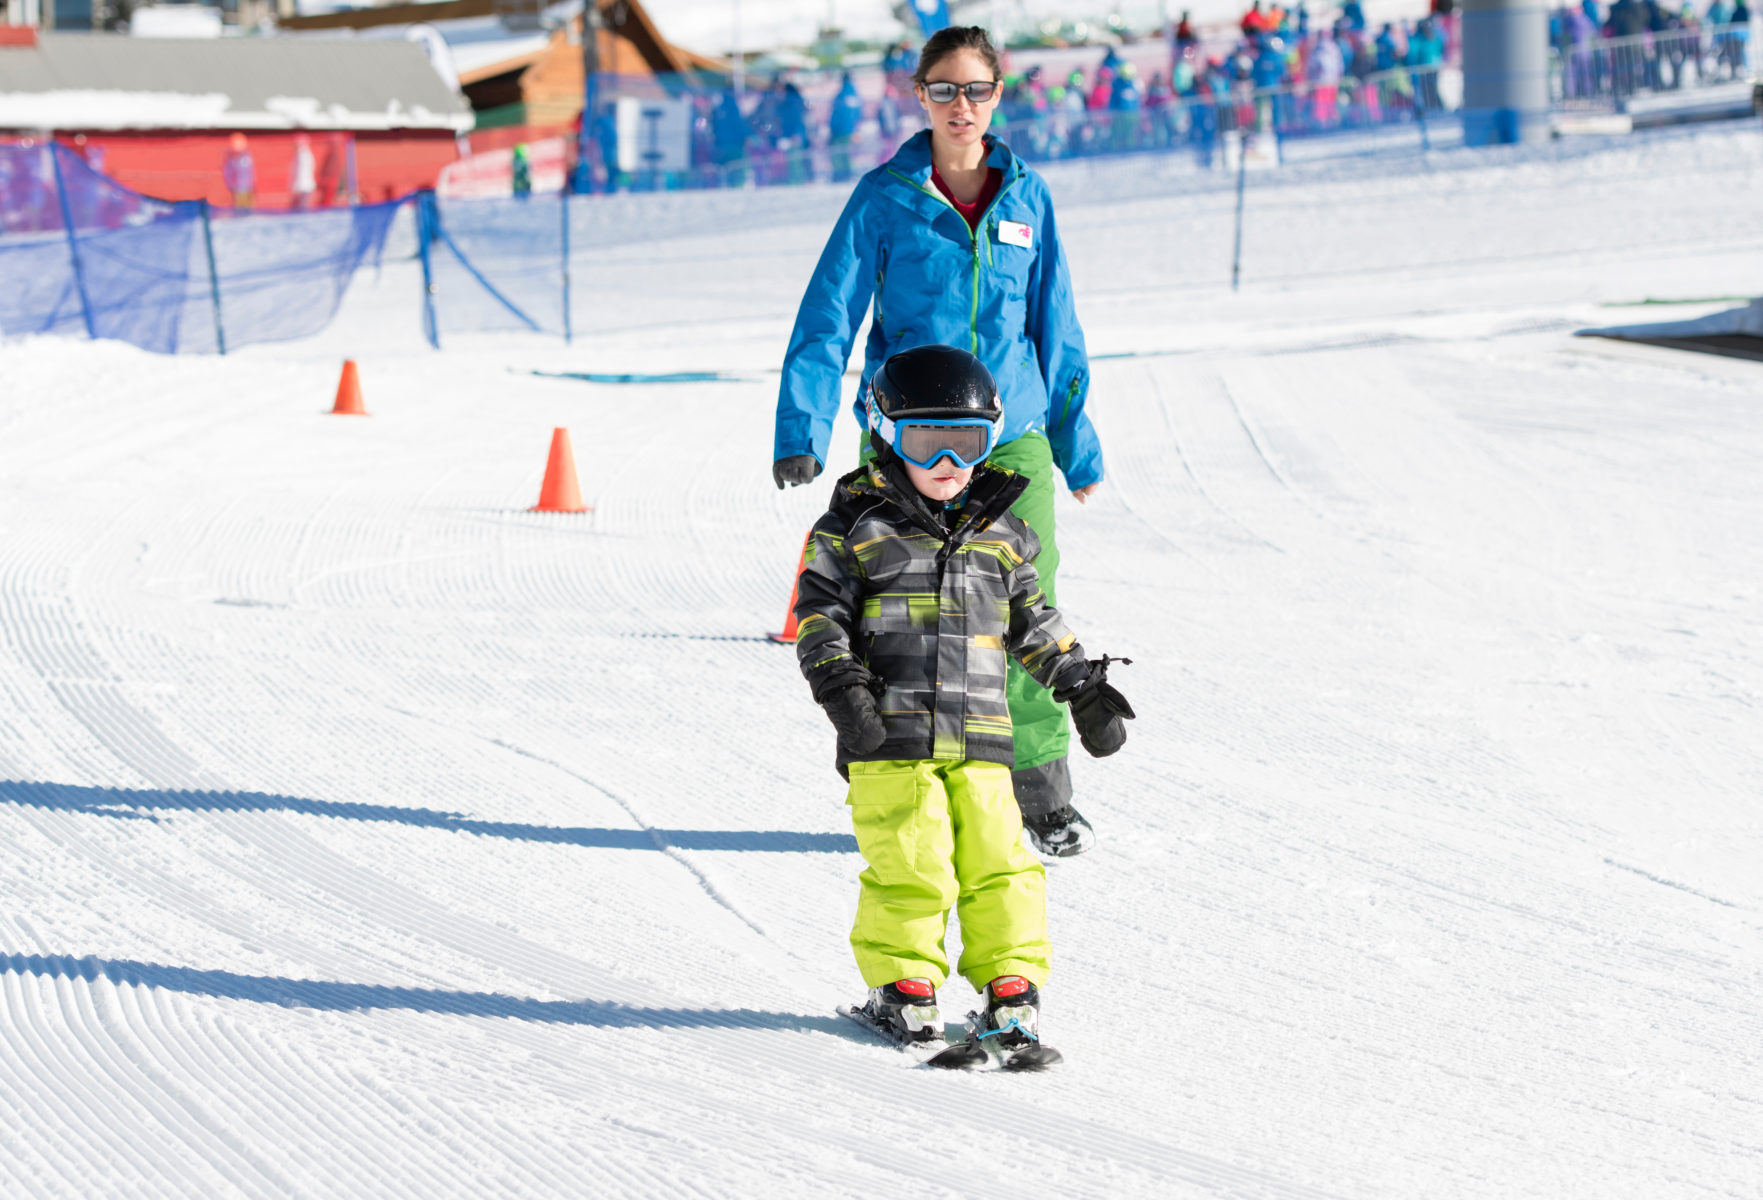 Ski school for the whole family